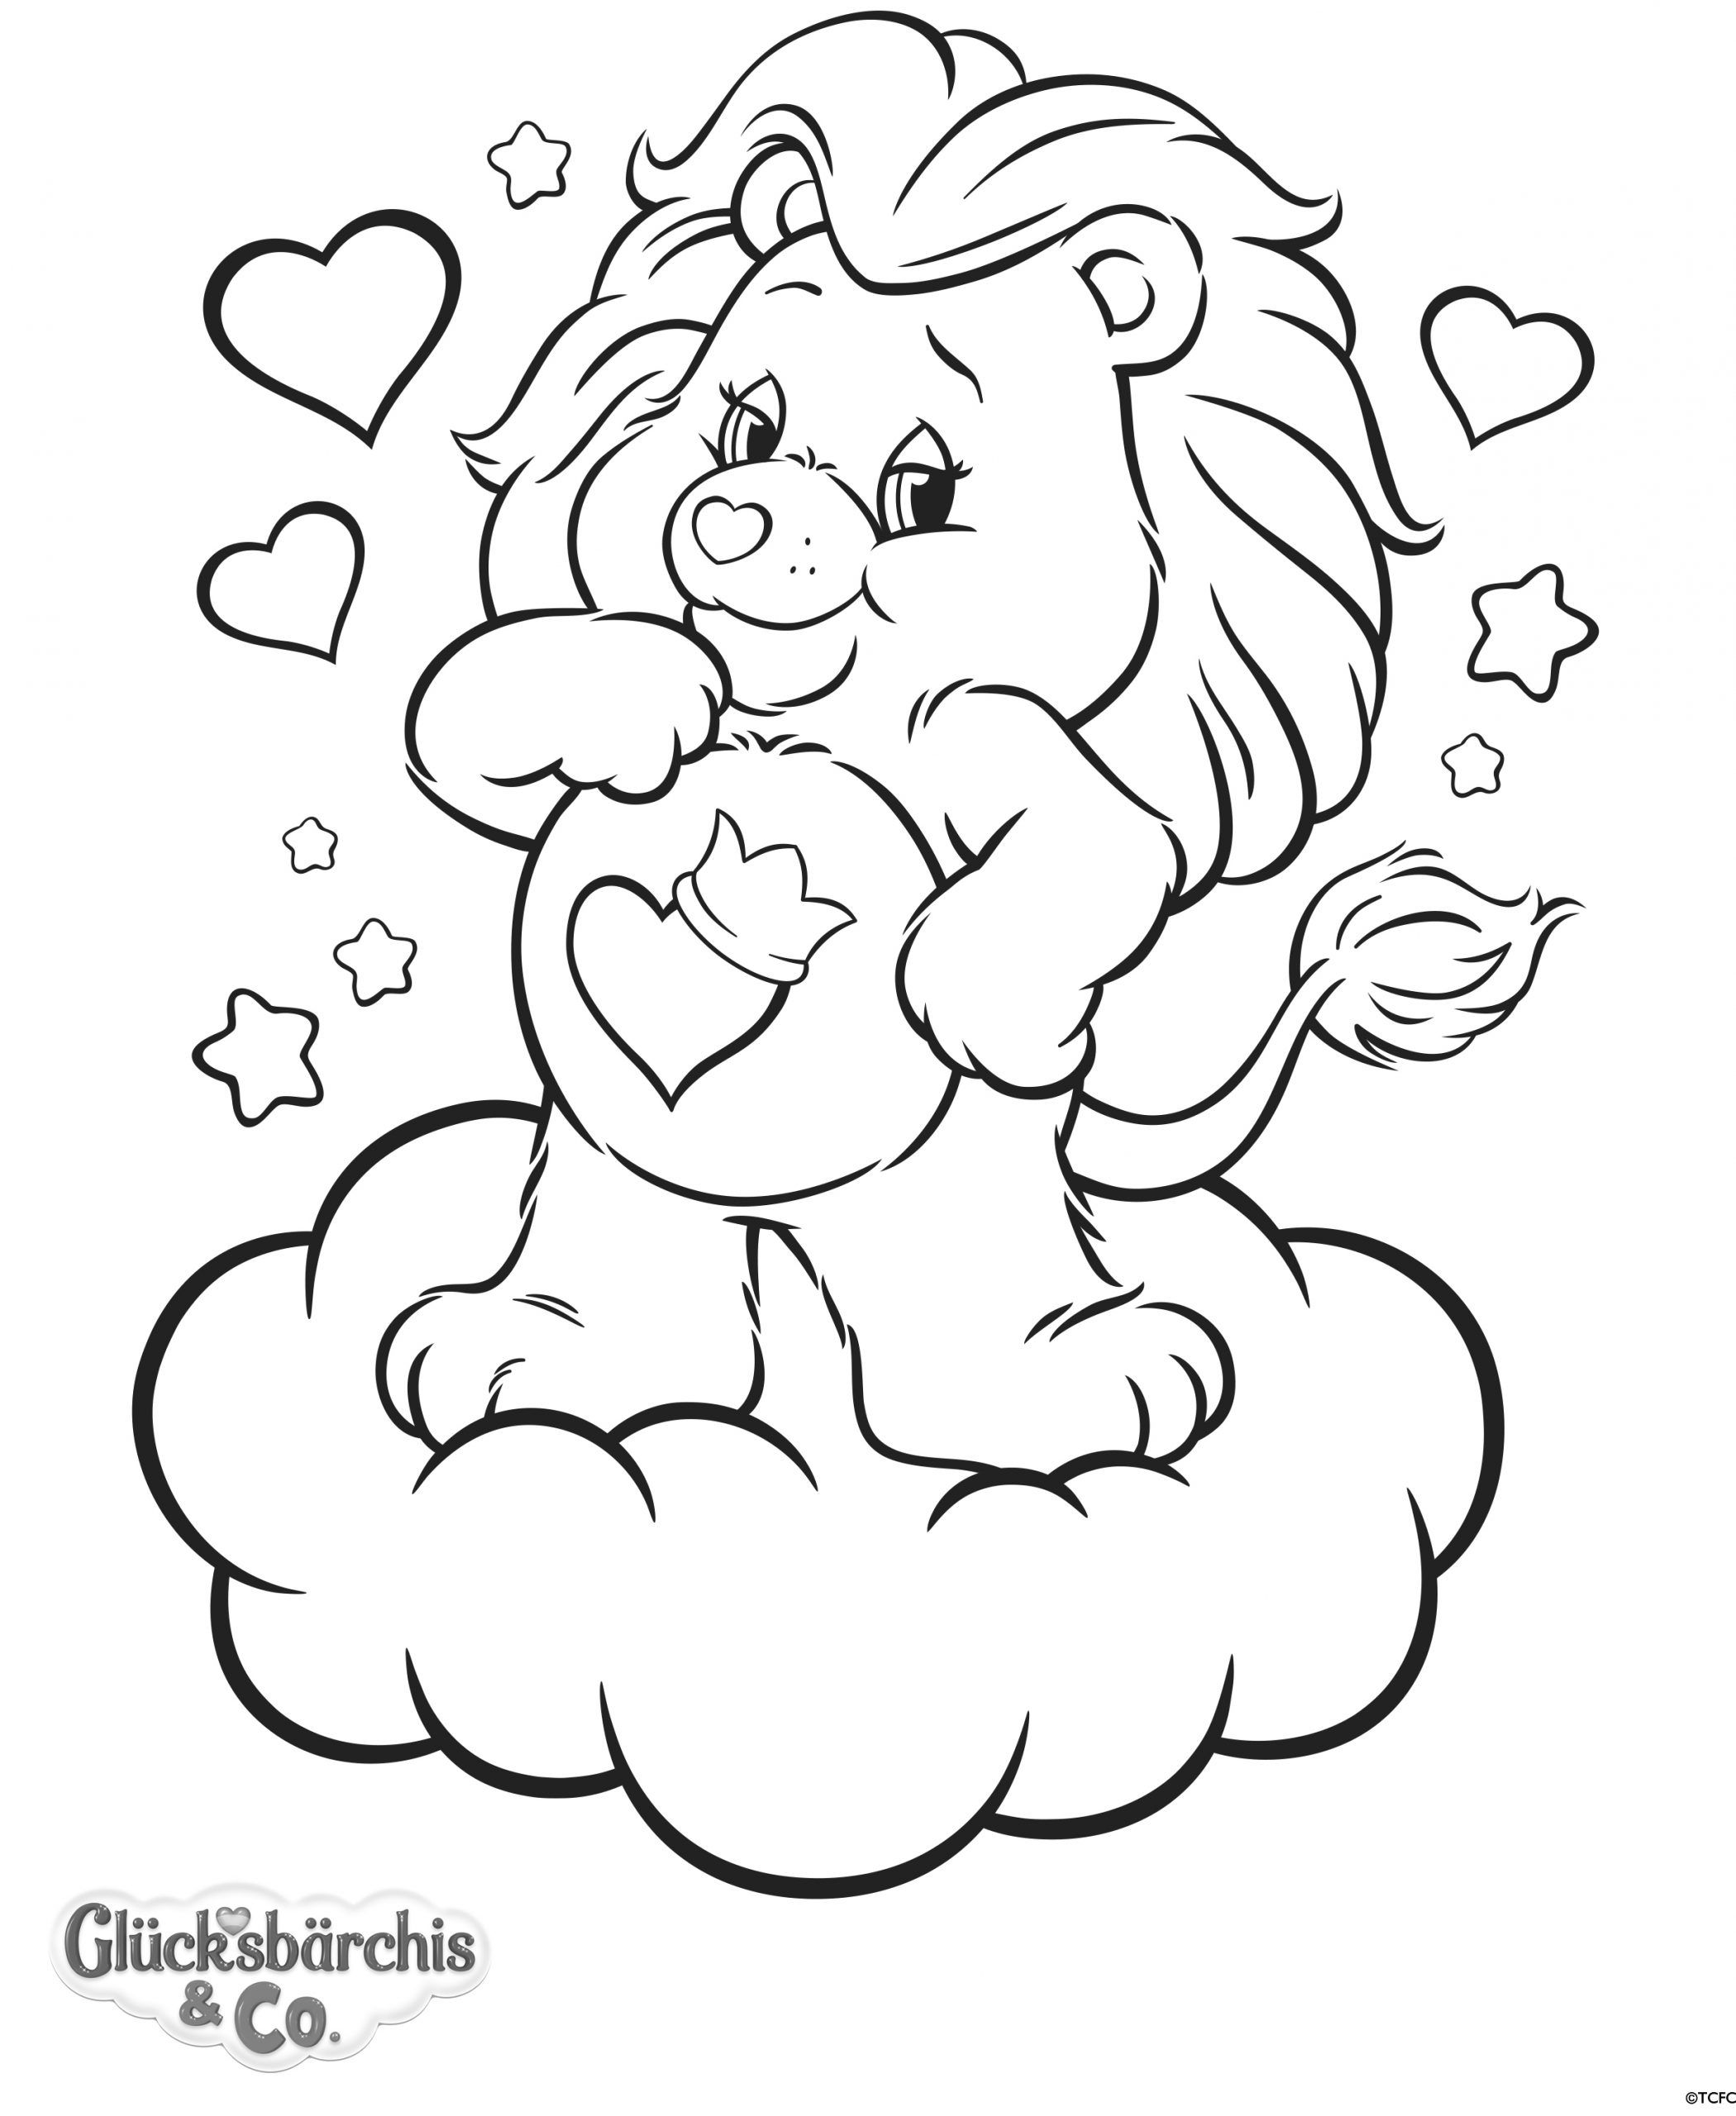 Sandmannchen Malvorlagen Bear Coloring Pages Cartoon Coloring Pages Easy Love Drawings